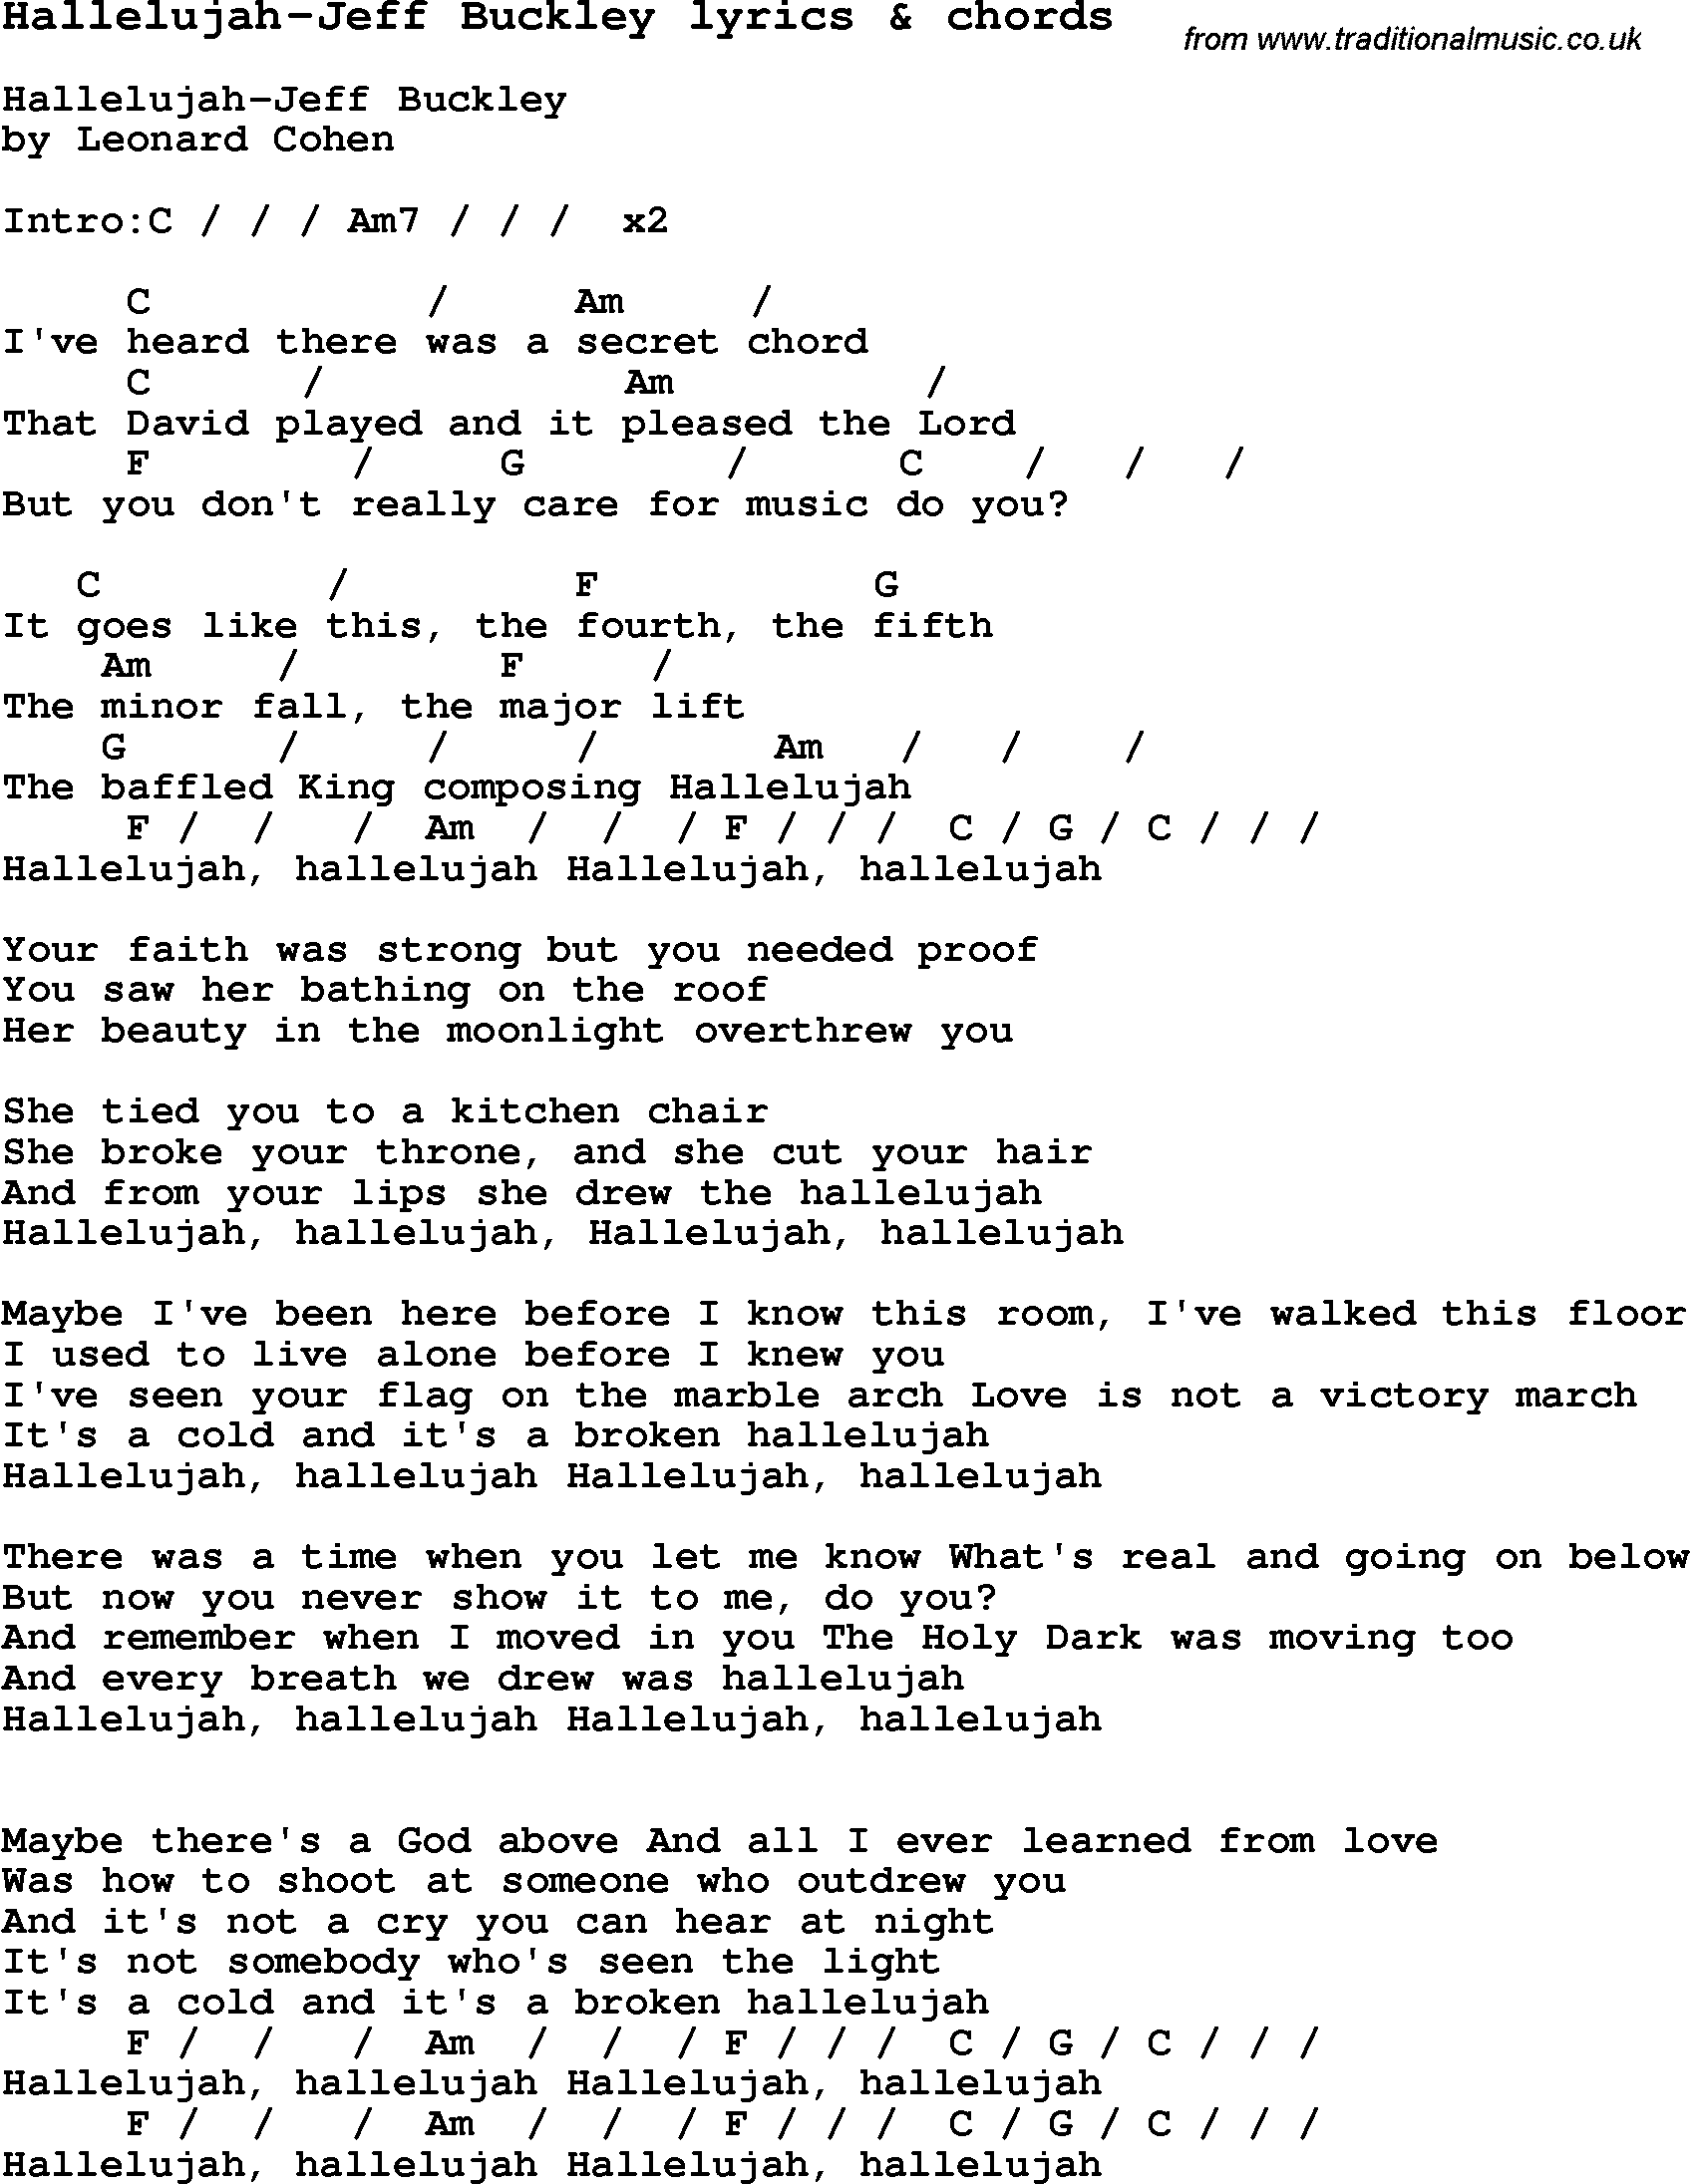 Love song lyrics forhallelujah jeff buckley with chords music love song hallelujah jeff buckley with chords and lyrics for ukulele guitar banjo and other instruments hexwebz Image collections